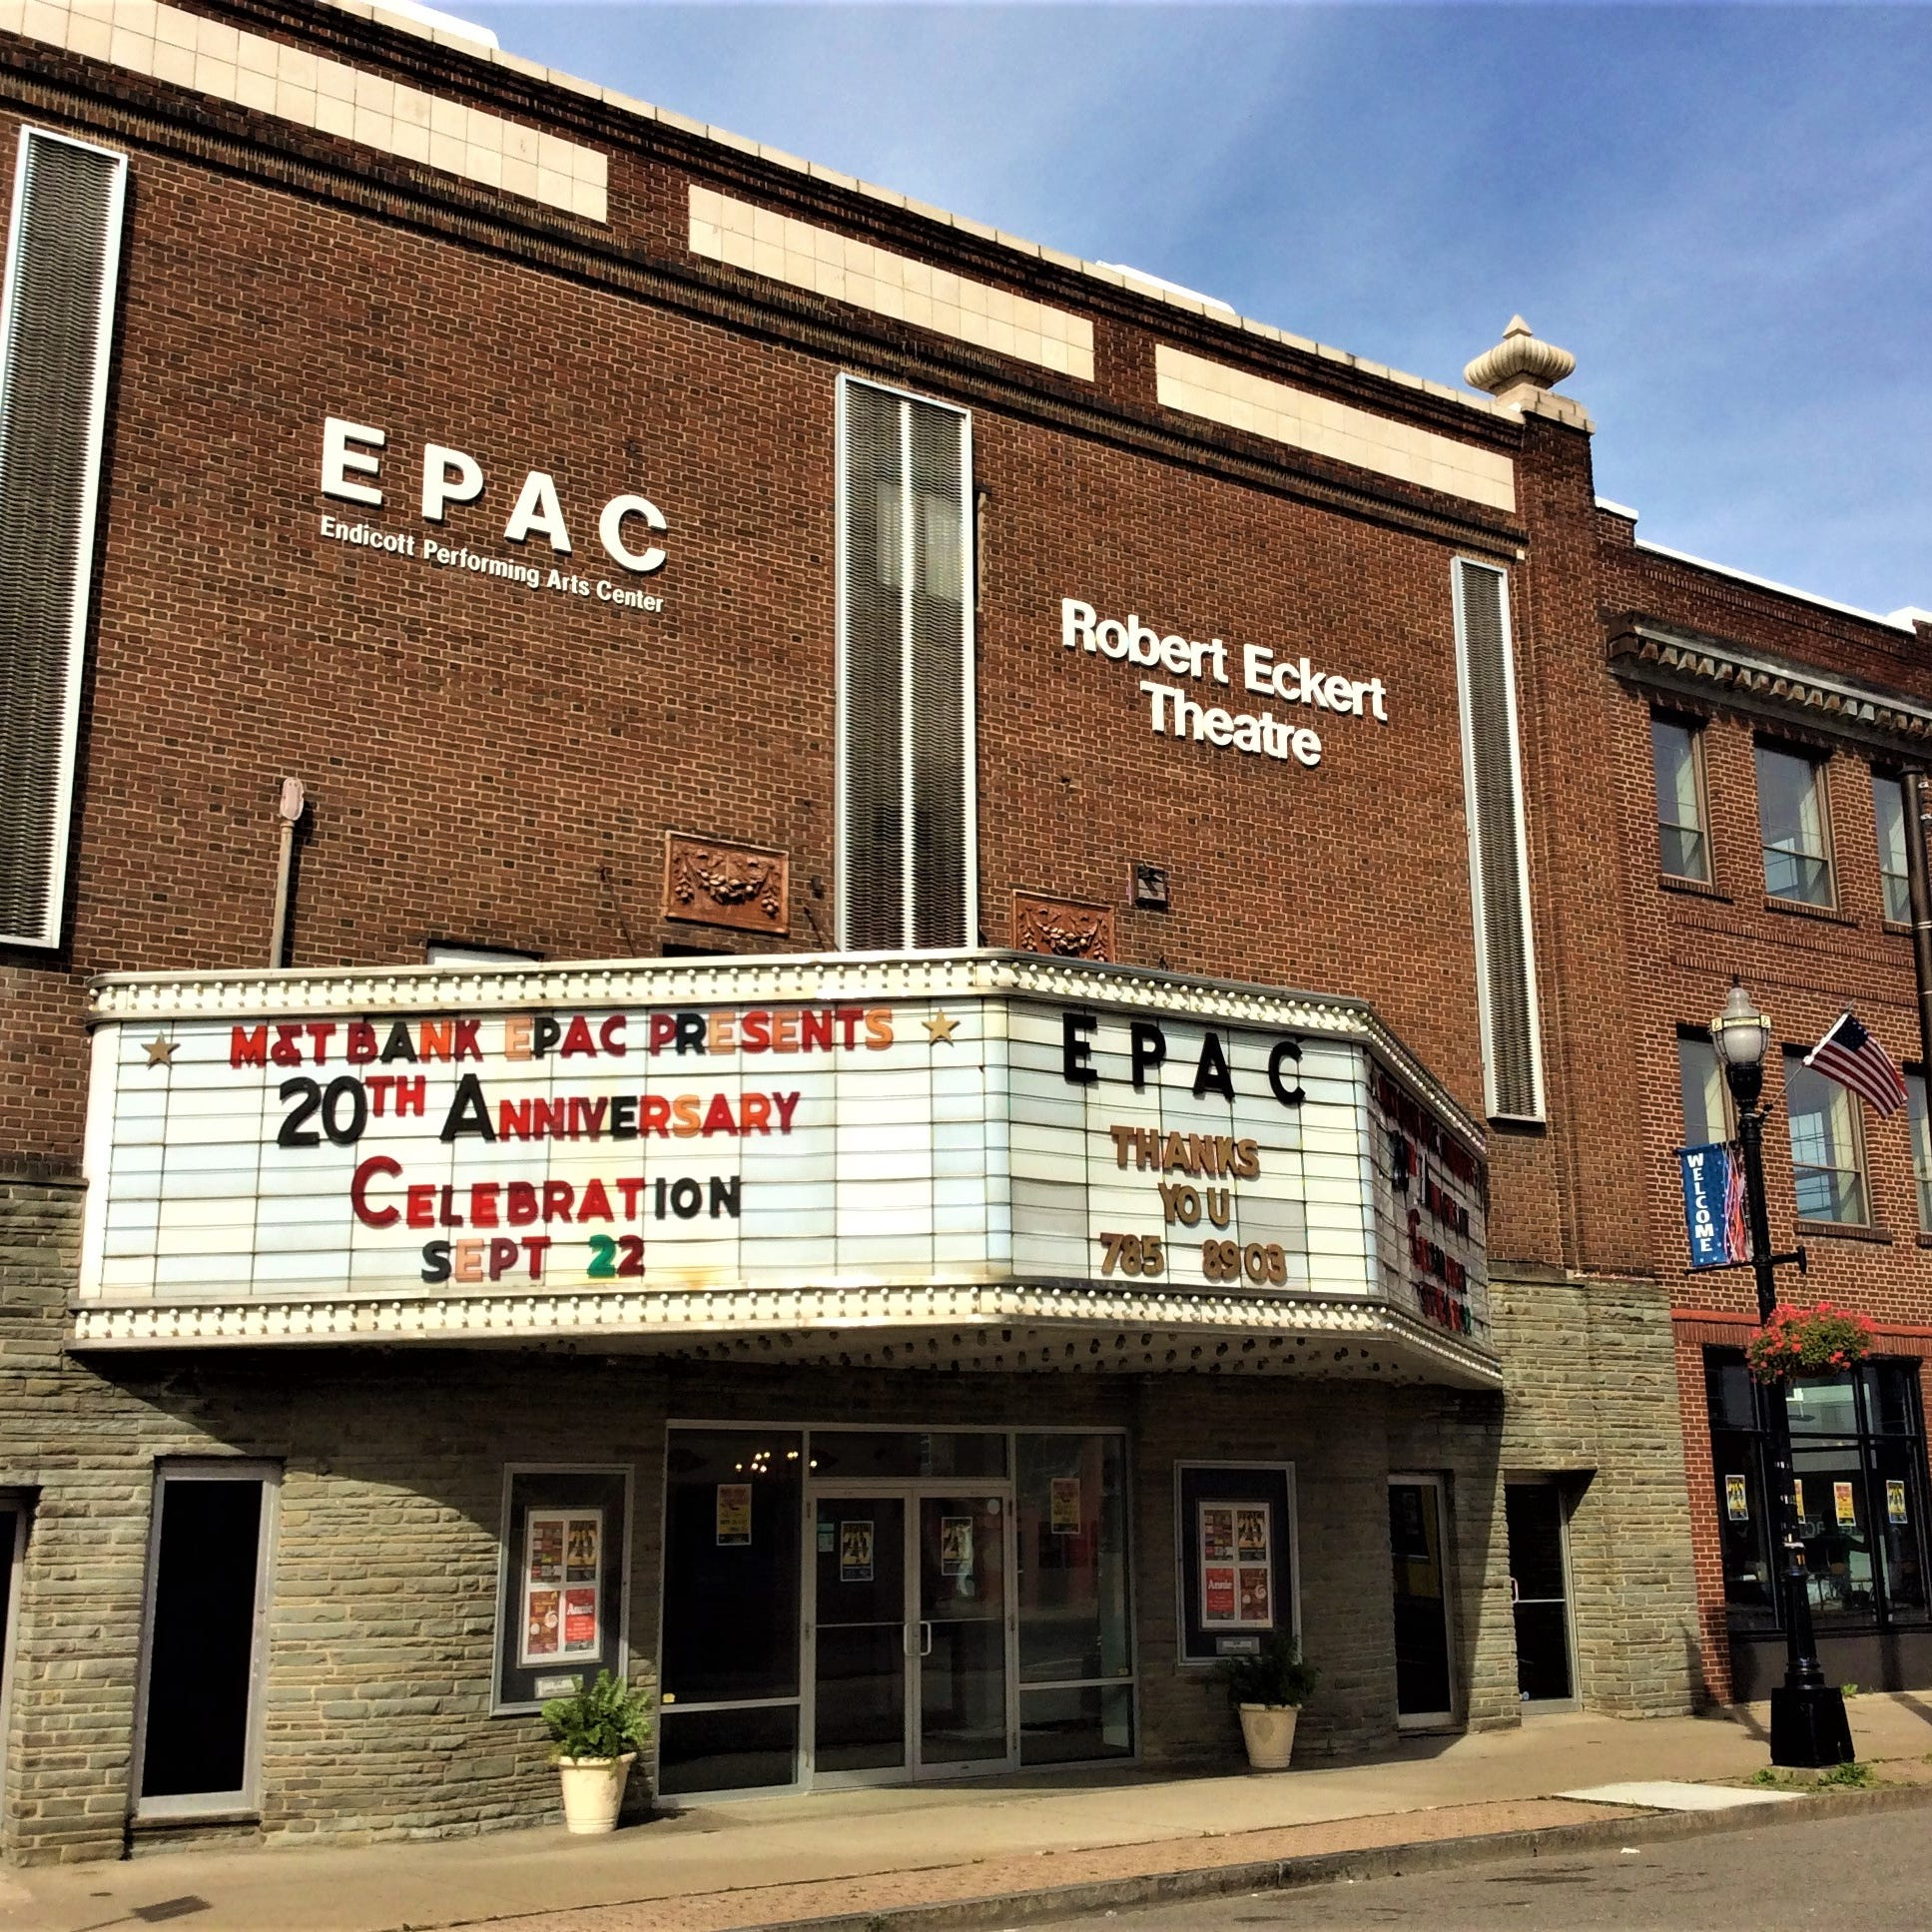 Founders look back on 20 years of Endicott Performing Arts Center